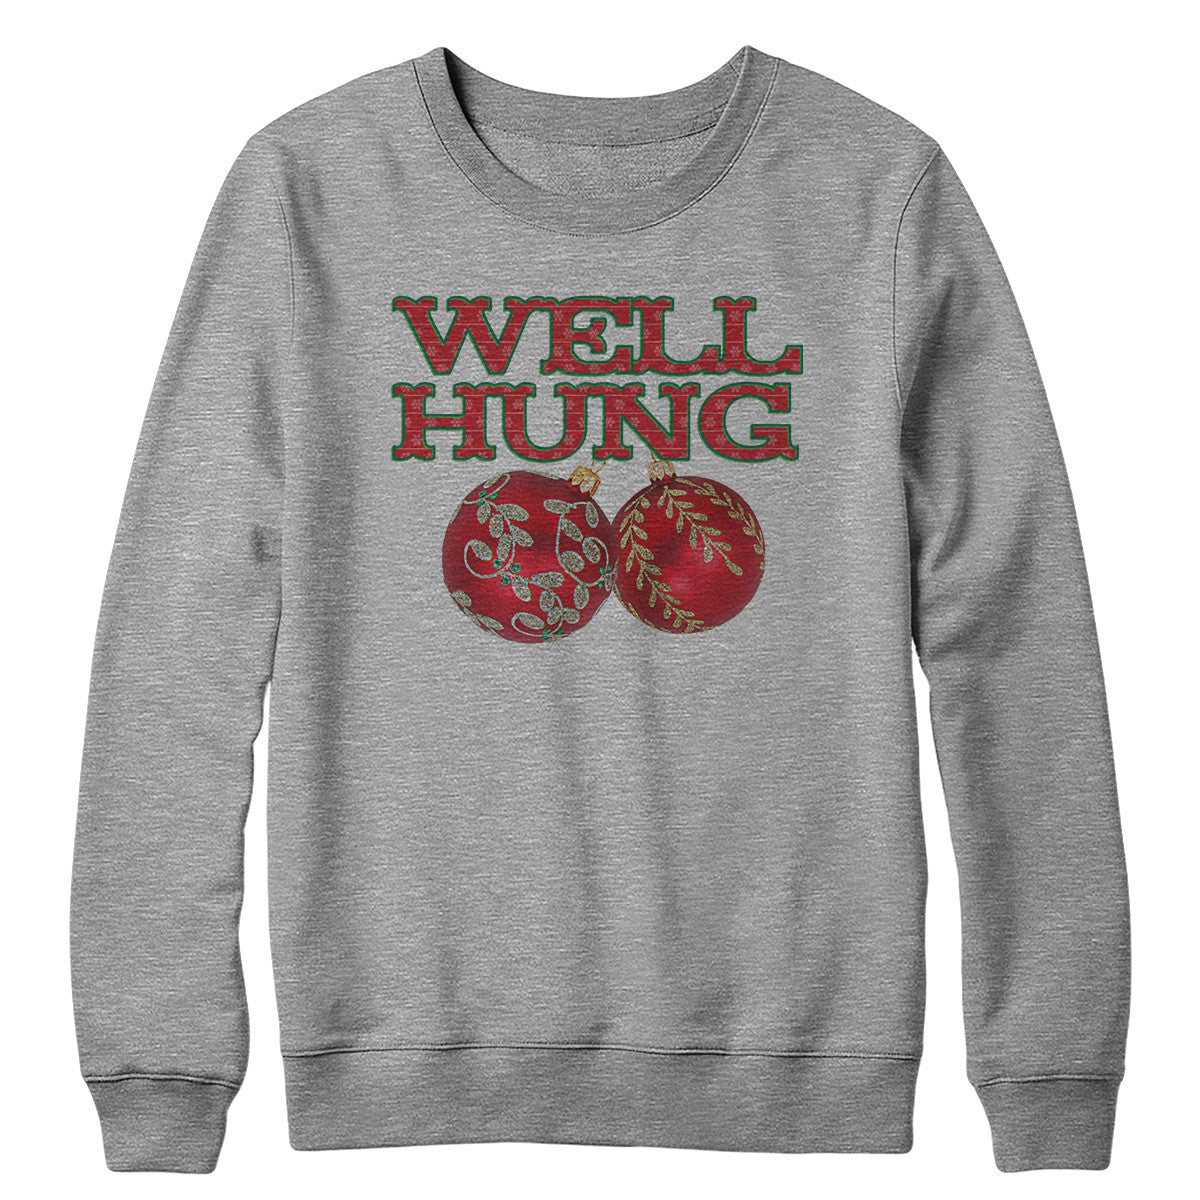 Well Hung Crewneck Sweatshirt